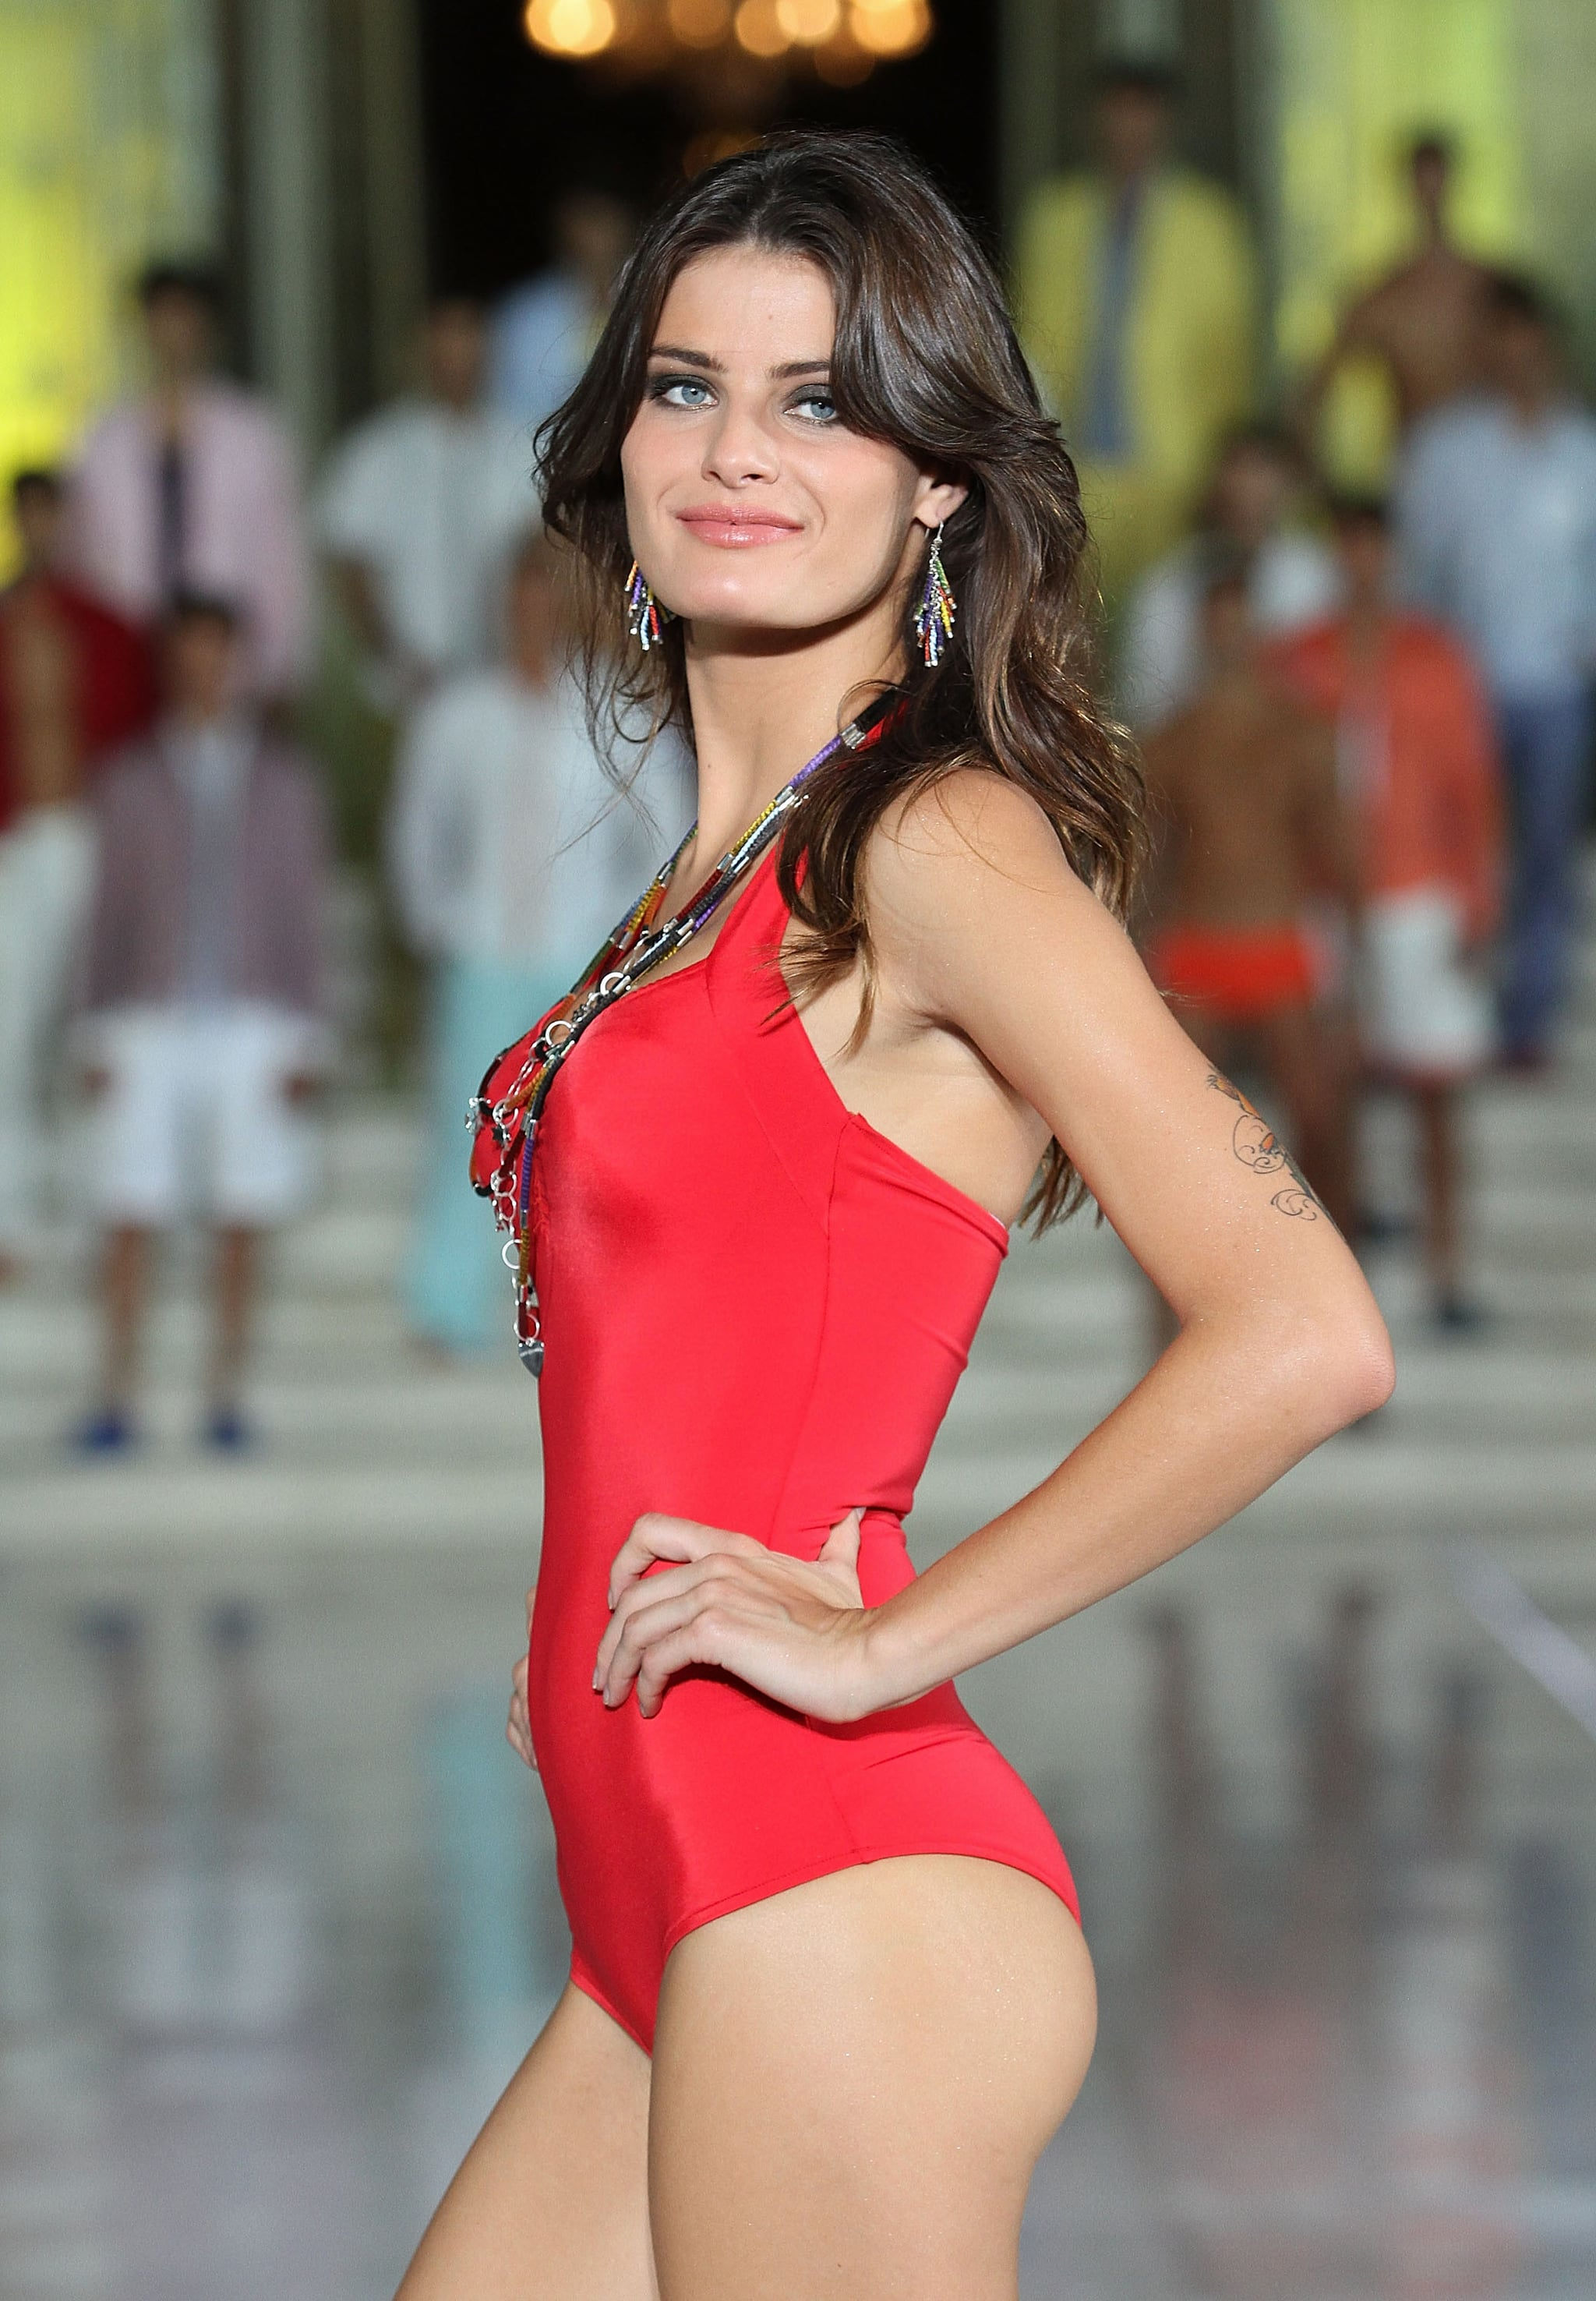 Images Isabeli Fontana nudes (78 photos), Sexy, Sideboobs, Feet, underwear 2017